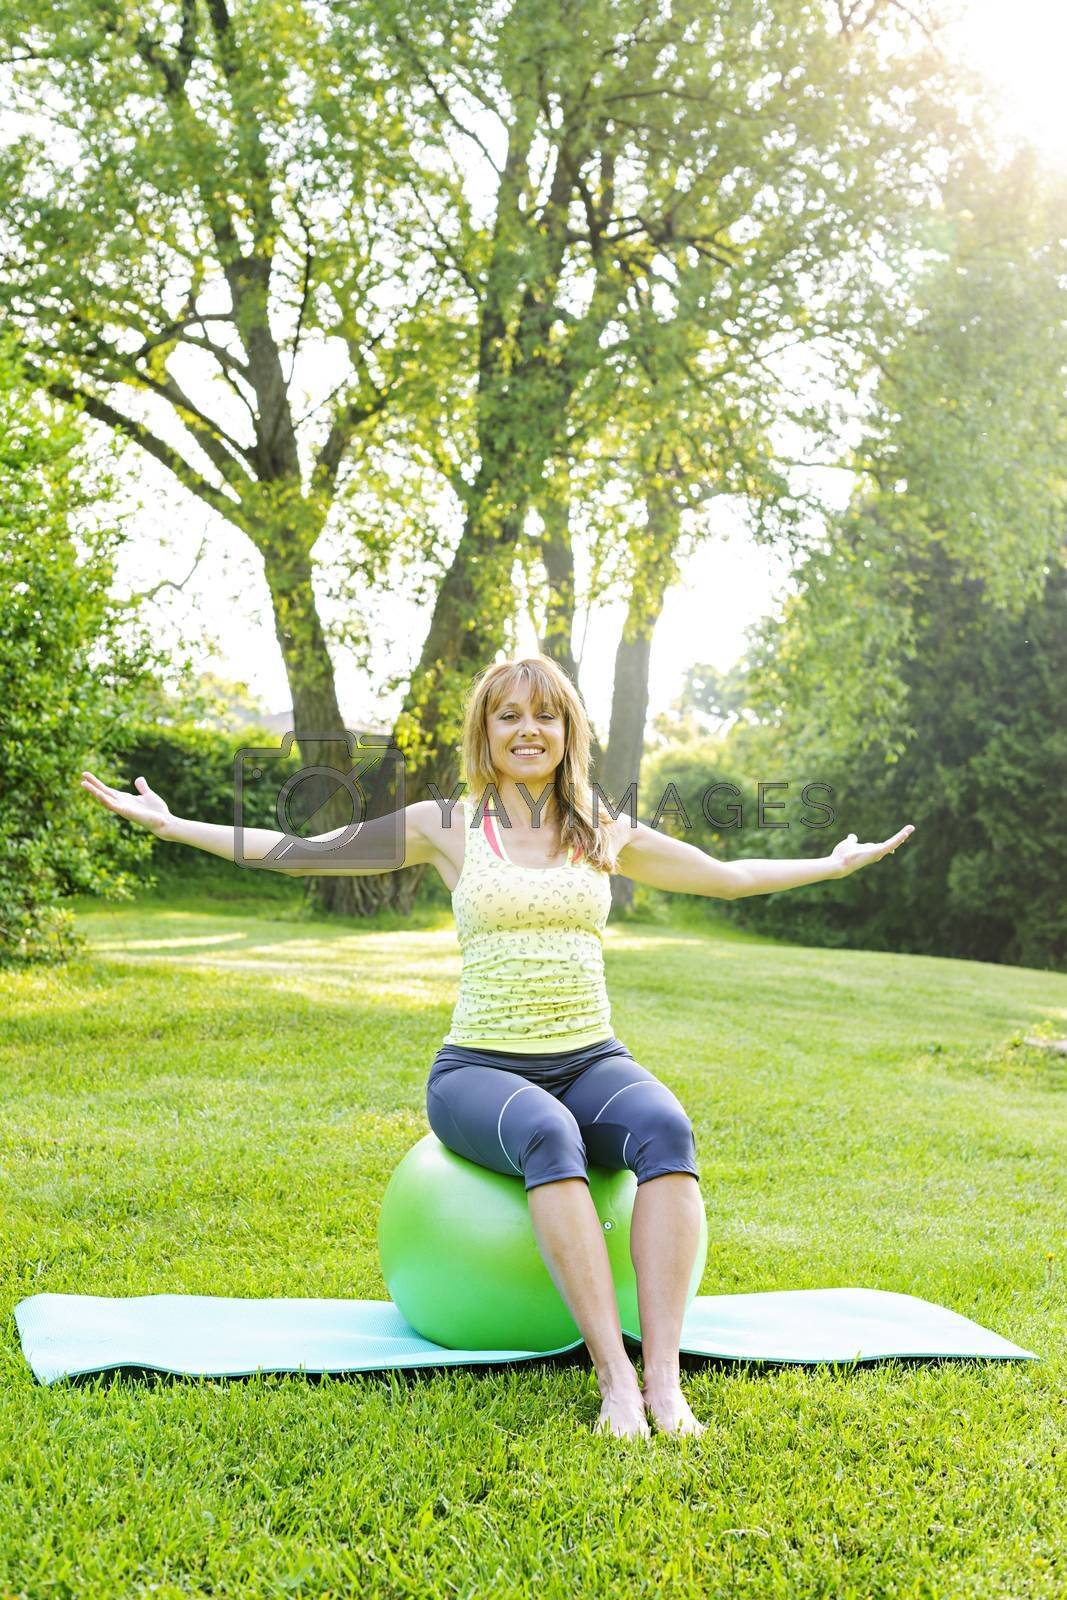 Female fitness instructor sitting on yoga exercise ball in green park